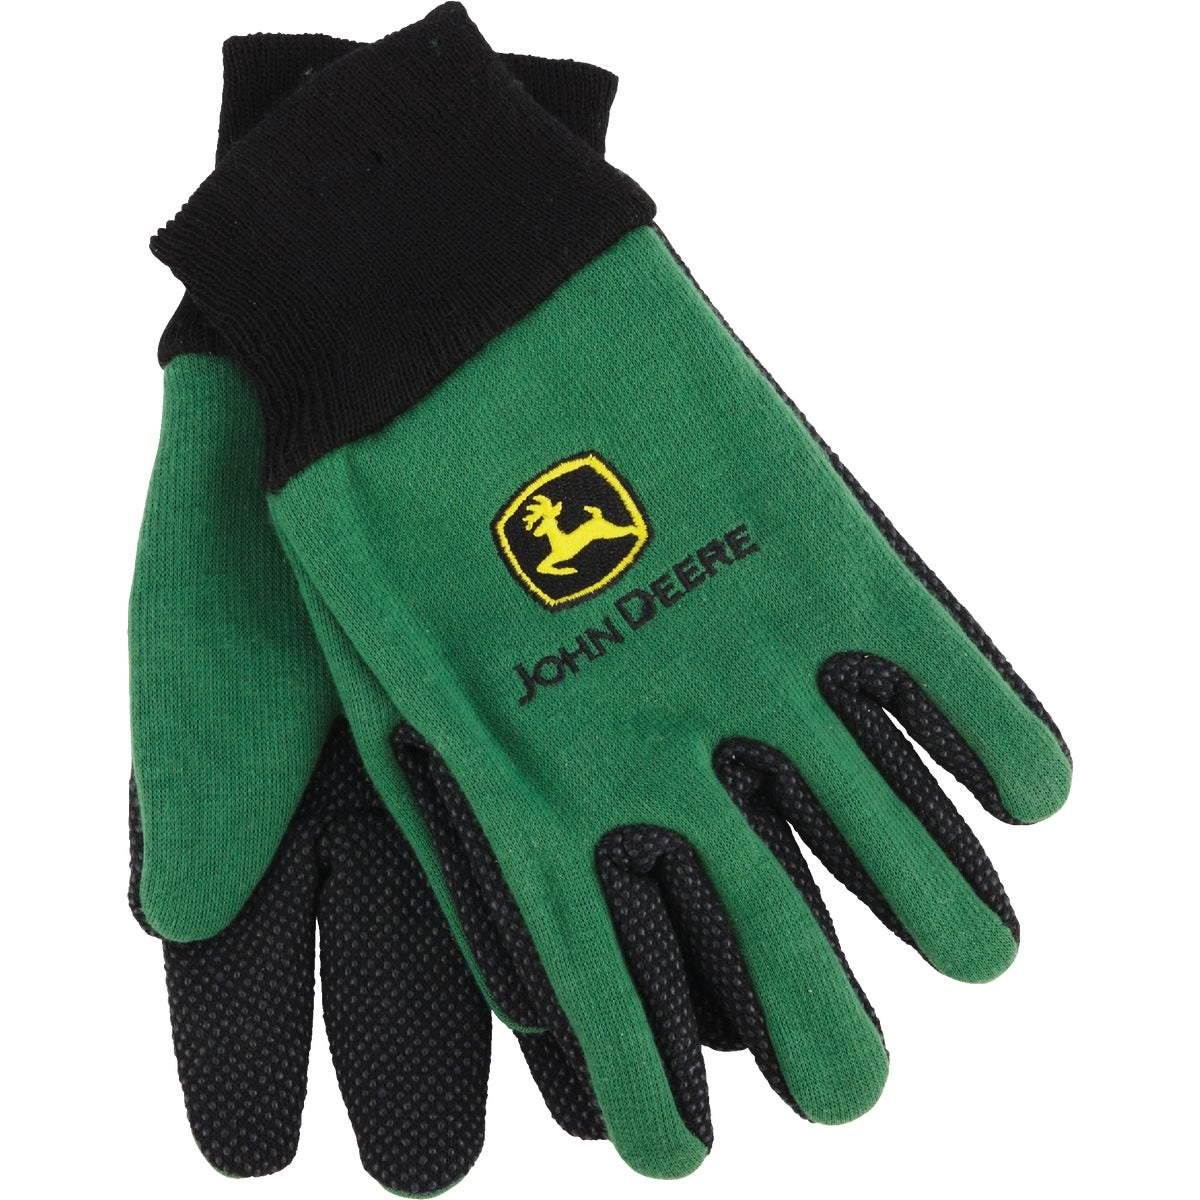 YOUTH GREEN JERSEY GLOVE